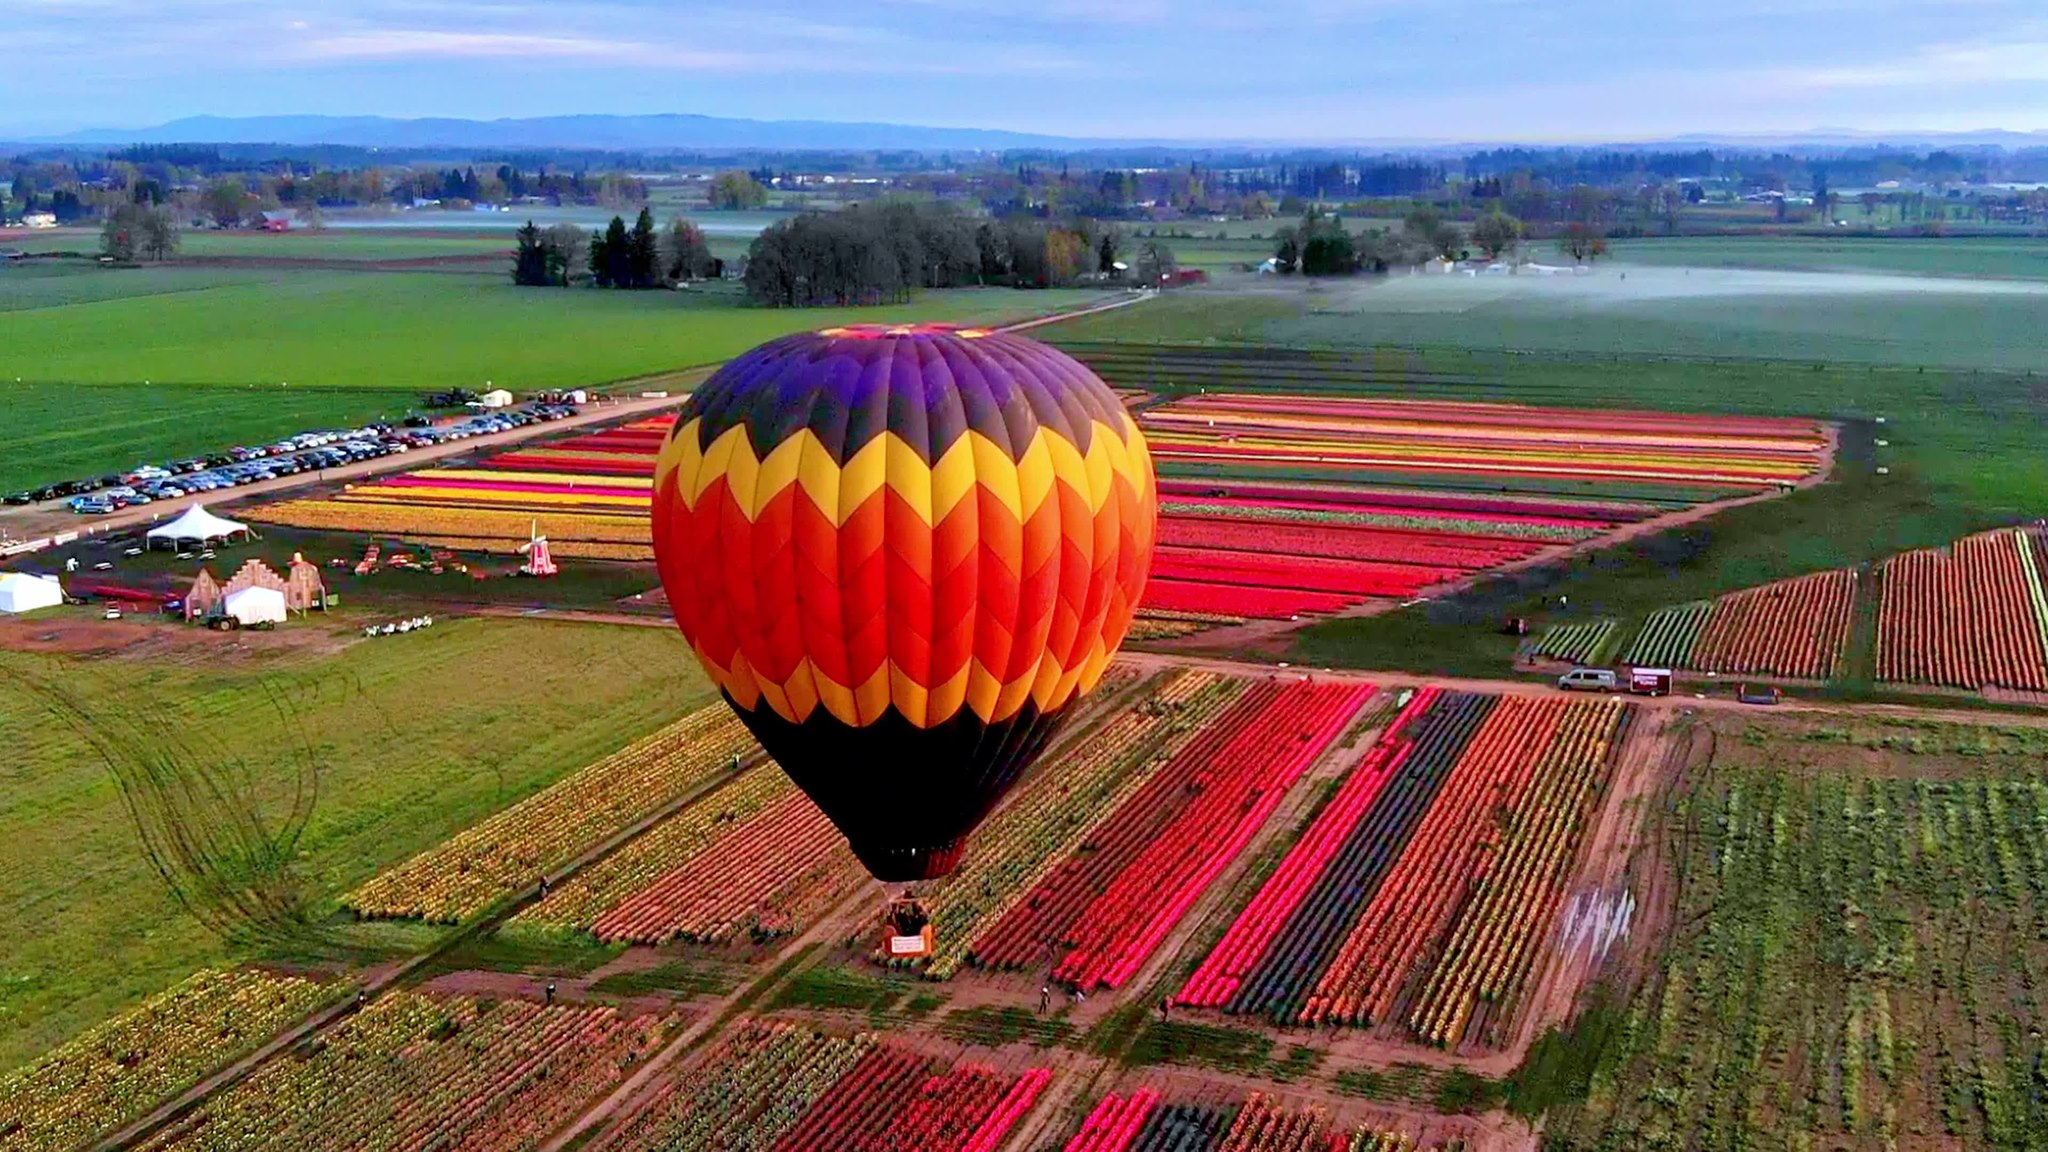 Explore 40 Acres Of Vibrant Blooms At The Wooden Shoe Tulip Festival In Oregon